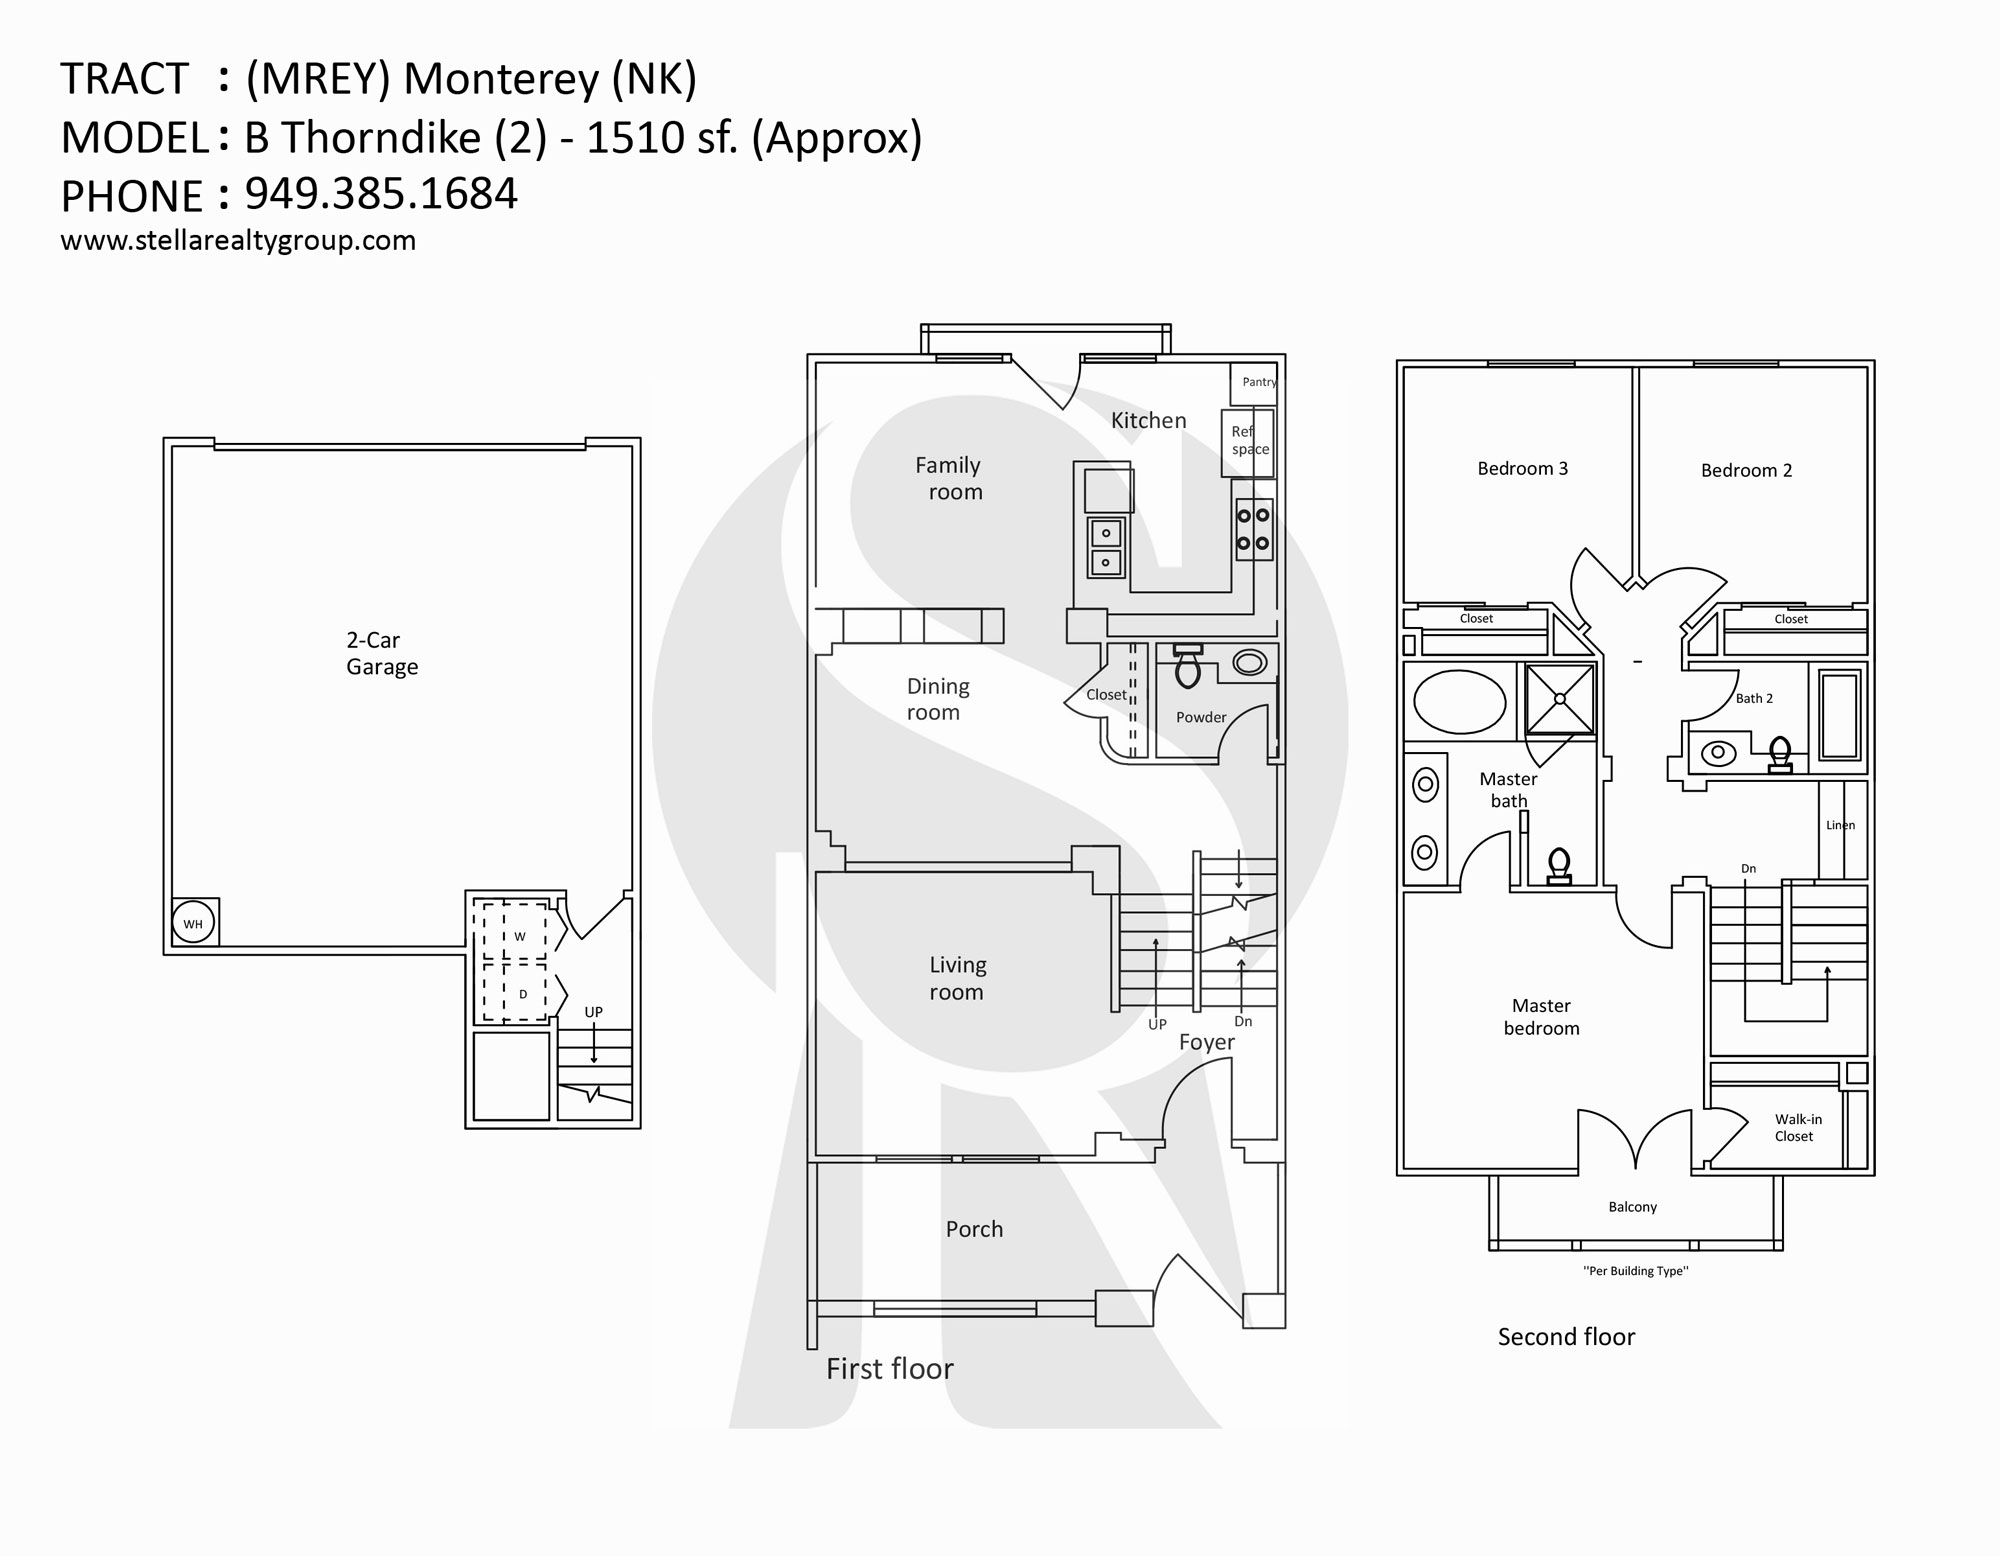 northpark monterey nk b thorndike 2 1510 sf - Deefield Park Homes Floor Plans